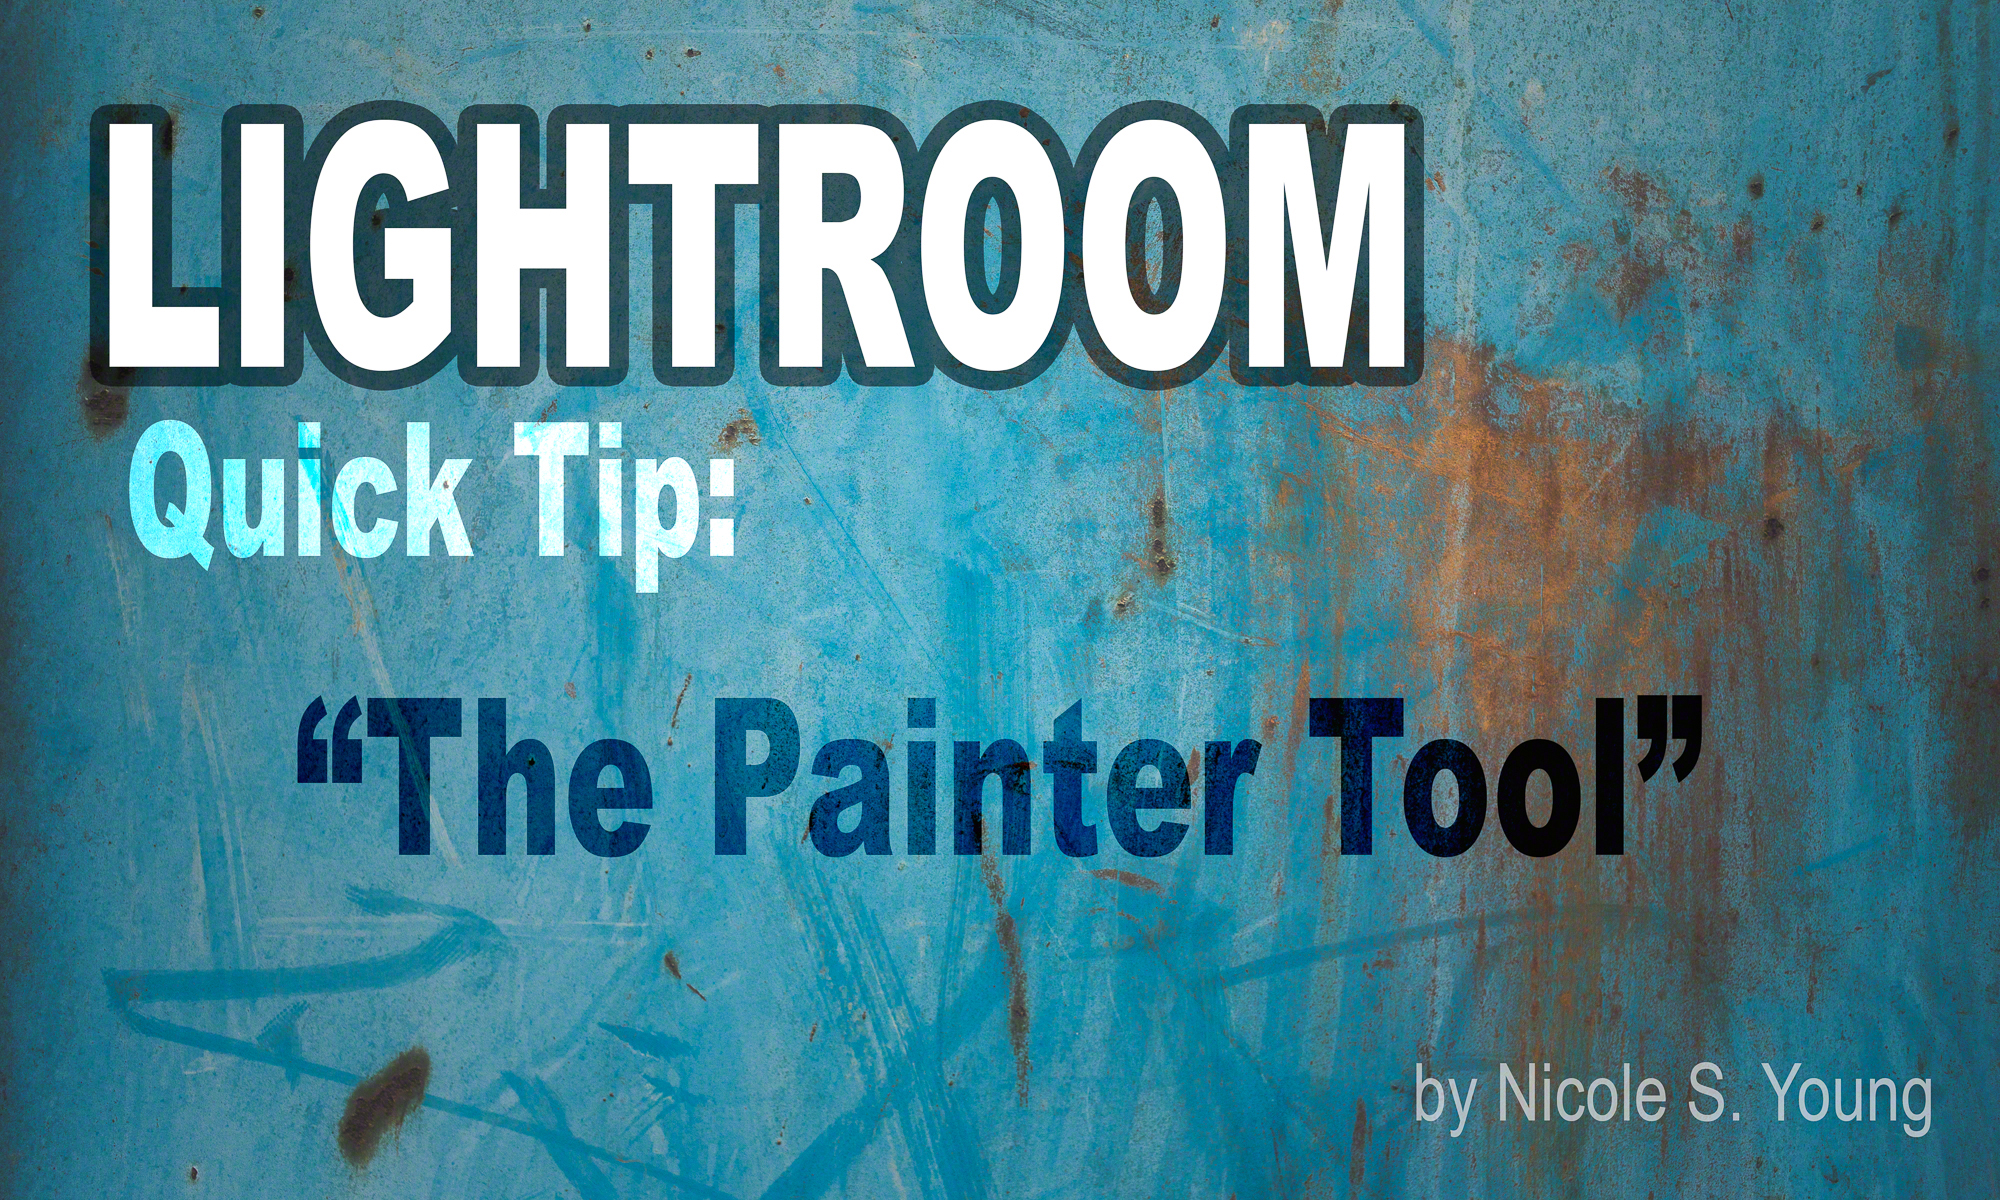 Lightroom Quick Tip: The Painter Tool